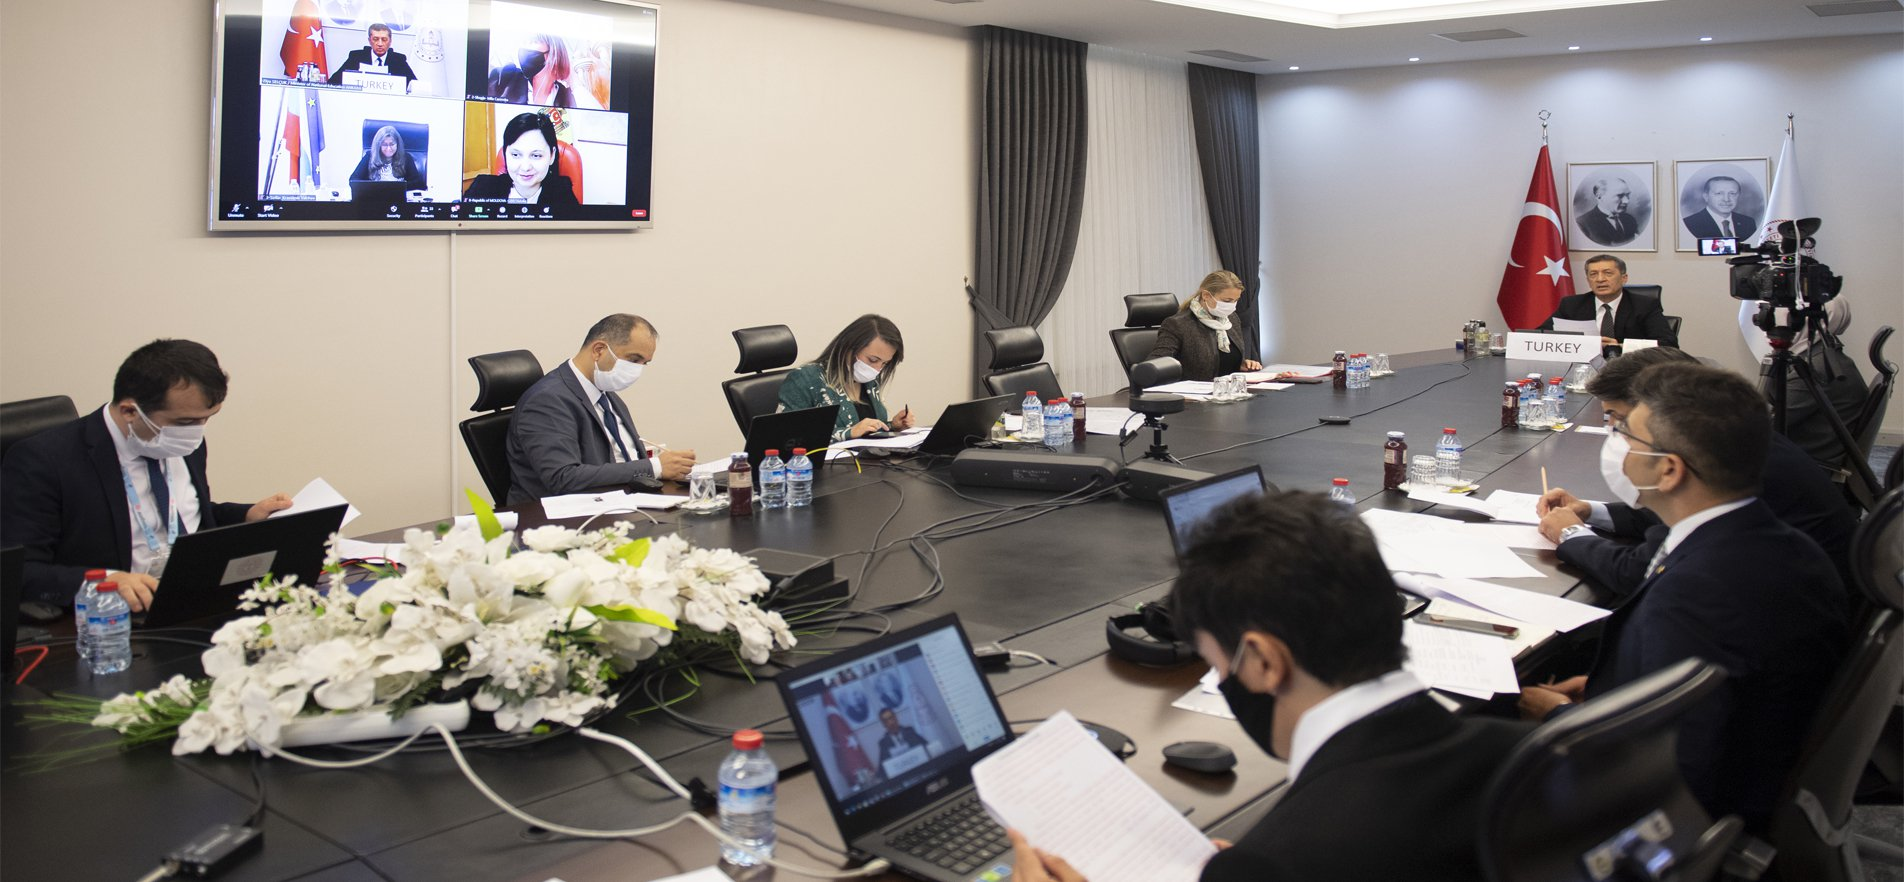 MINISTER DISCUSSES EDUCATION PLAN DURING COVID-19 PROCESS WITH HIS EUROPEAN COUNTERPARTS